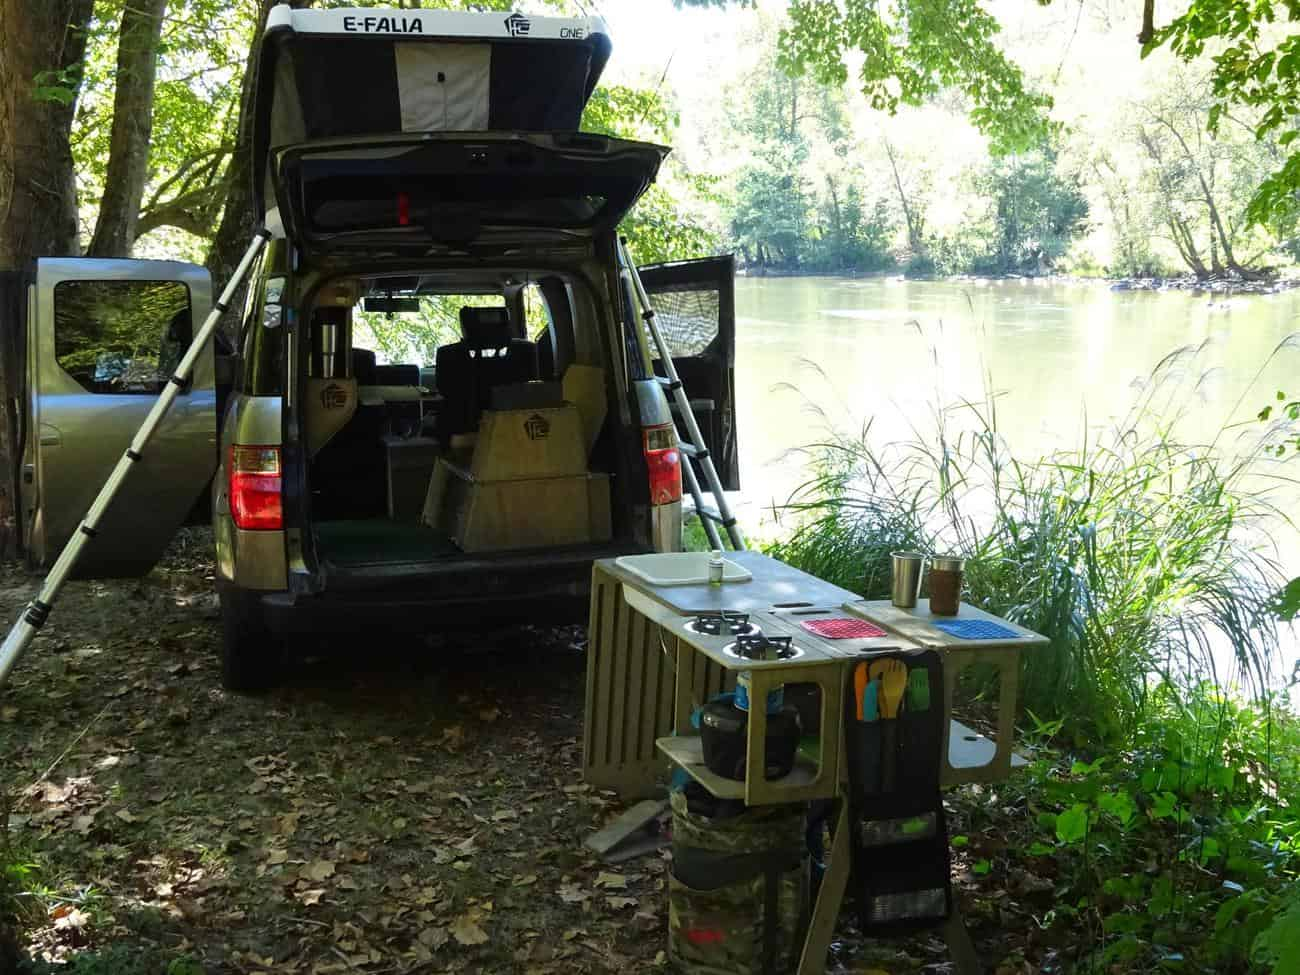 Camped along the French Broad River-FifthElementCamping.com (Copy)